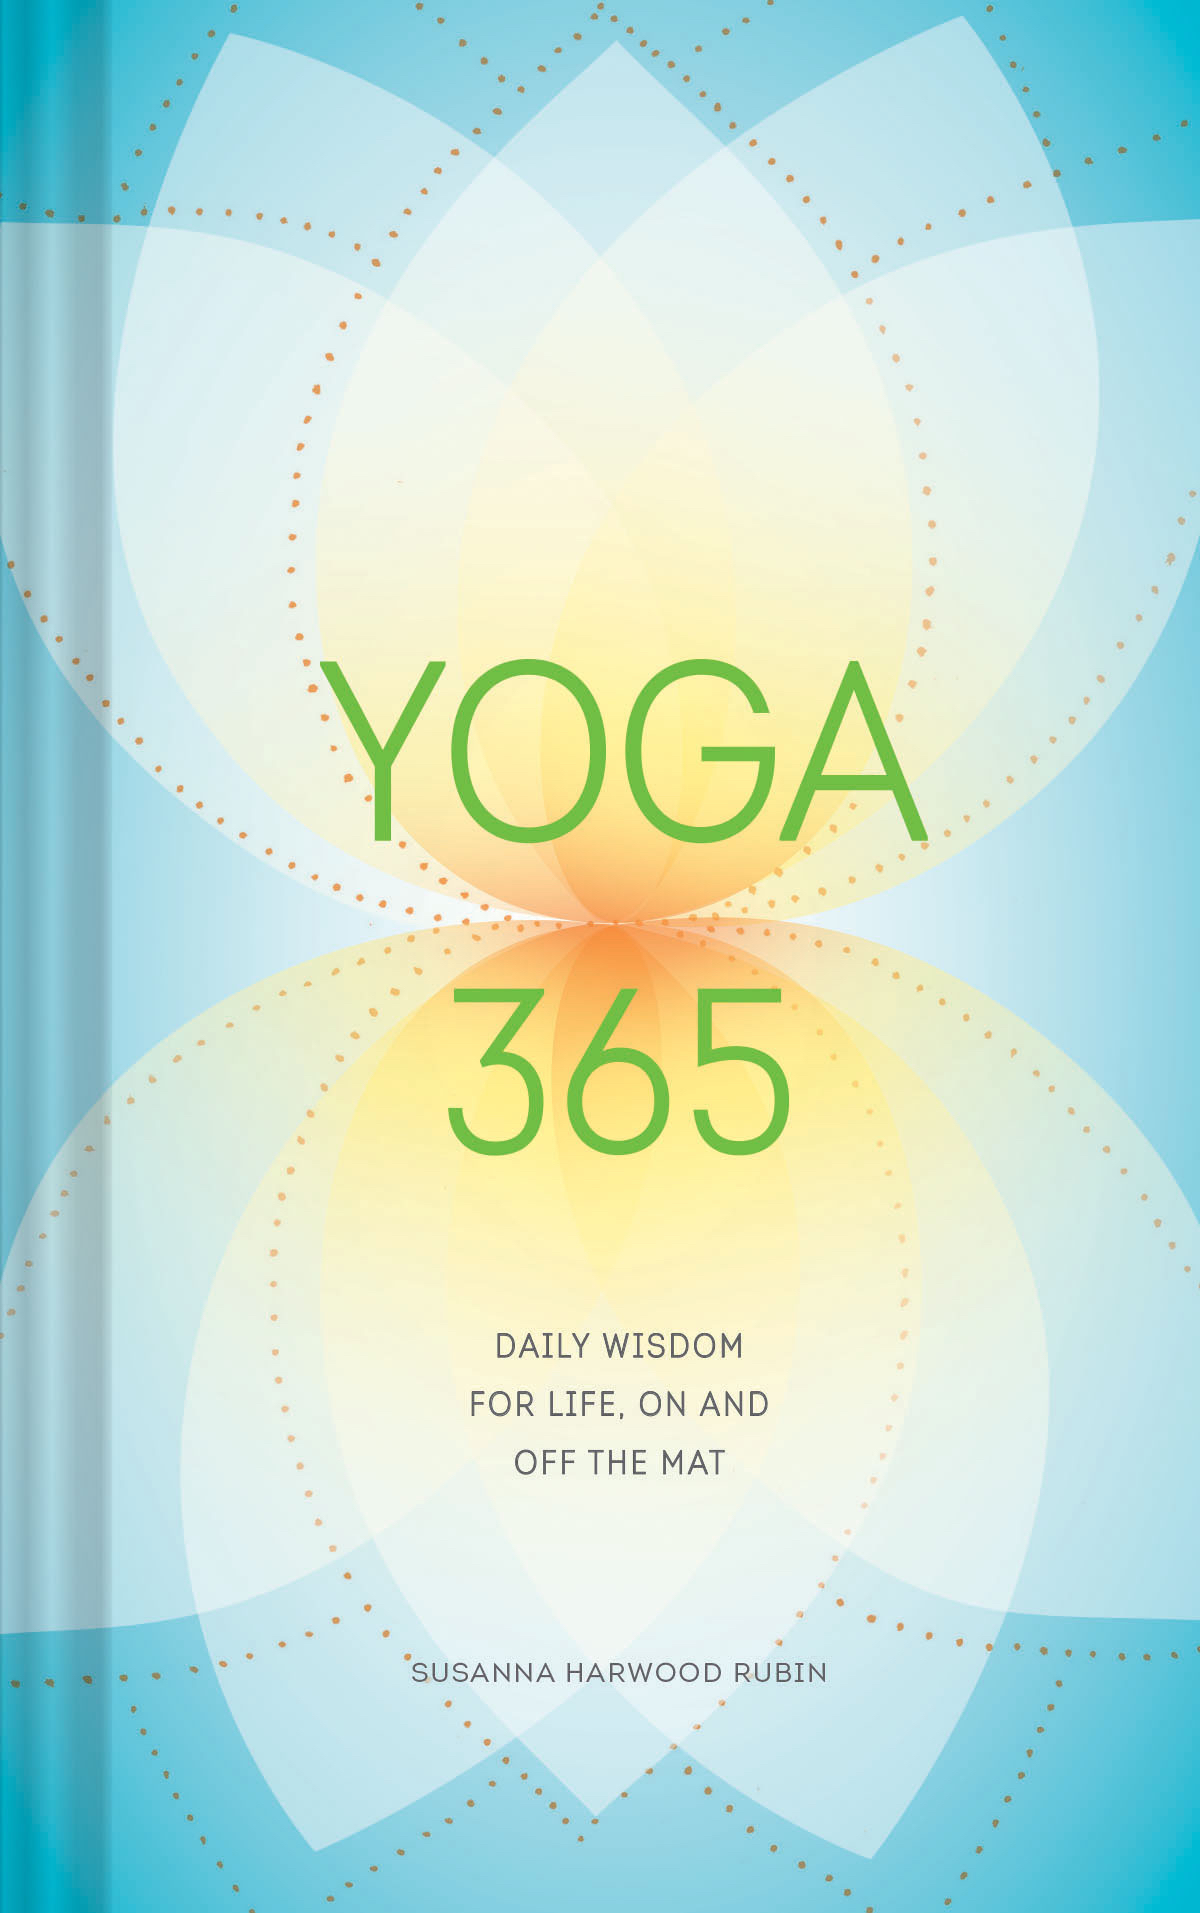 Book Cover Material Yoga : Yoga book susanna harwood rubin